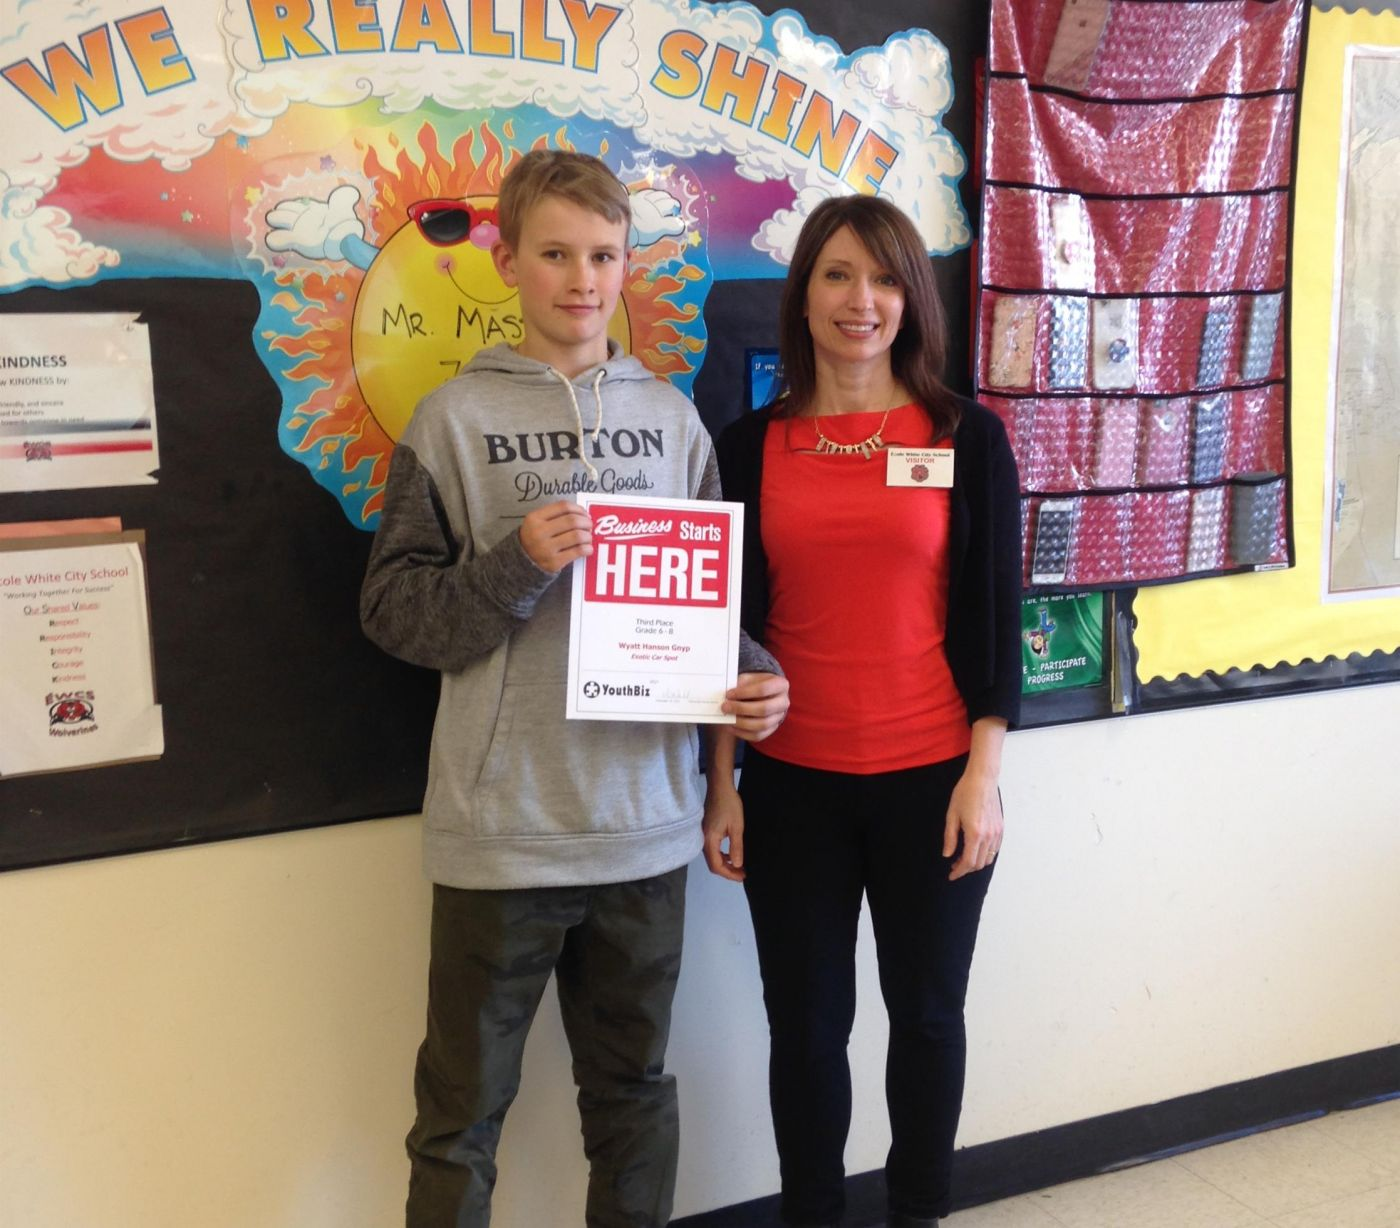 Wyatt Hanson Gnyp from Ecole White City School accepts his 3rd Place award from CF Sunrise's Verna O'Neill